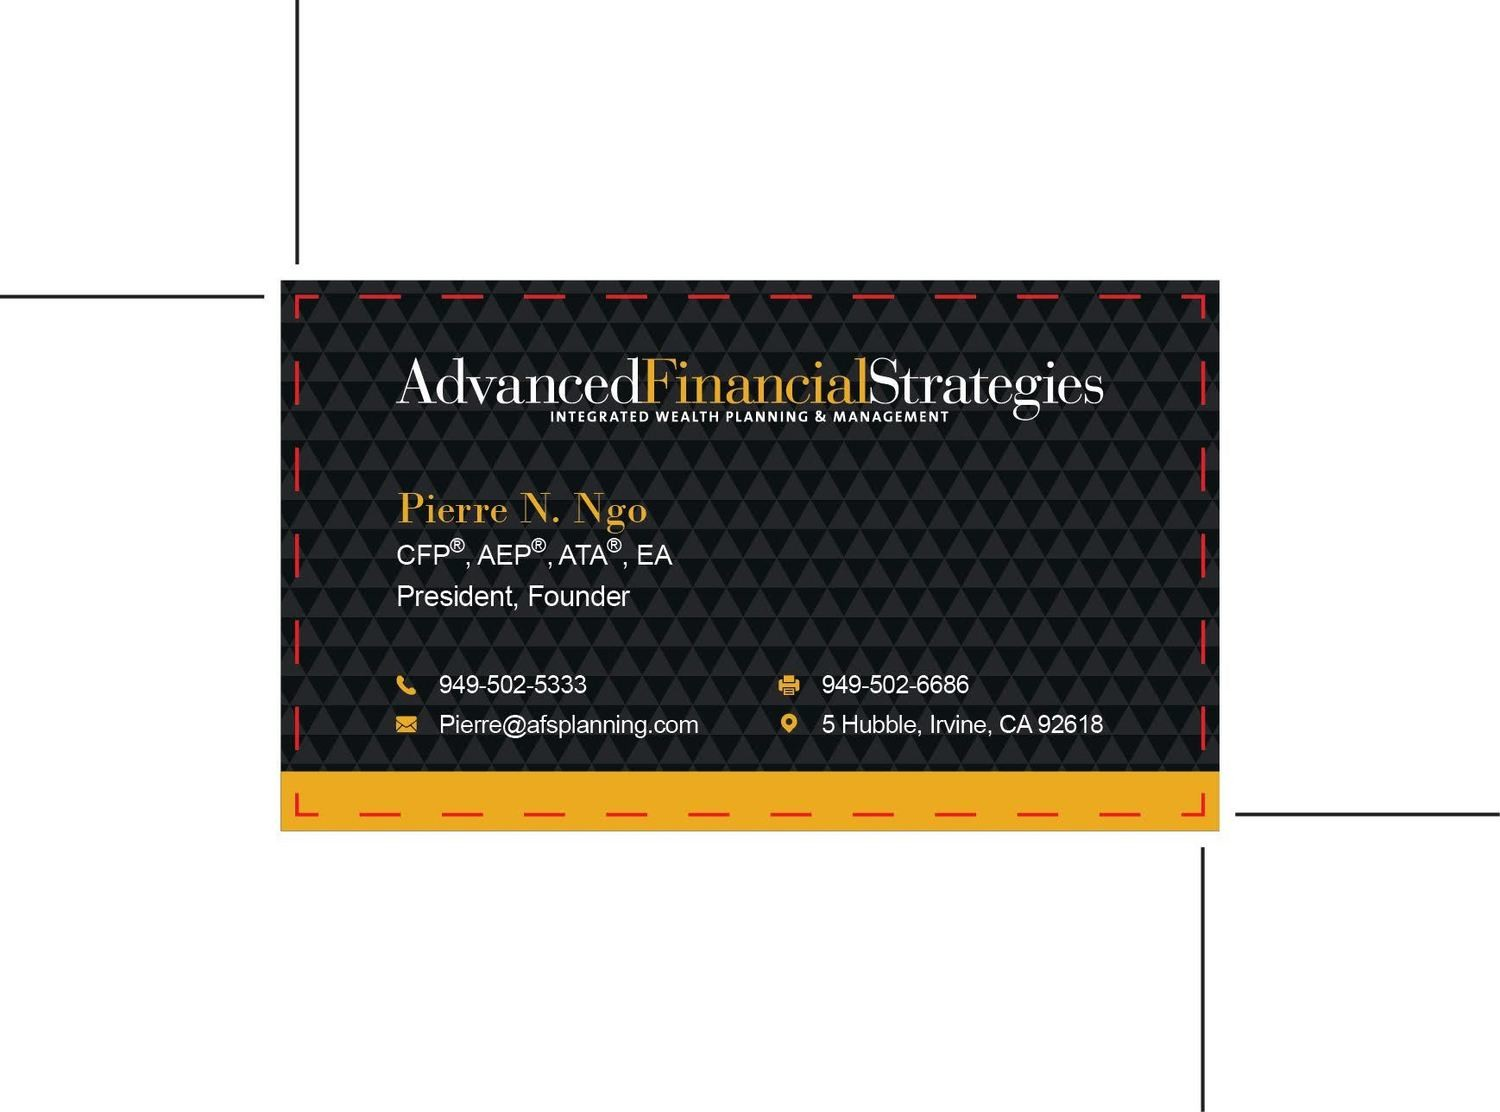 Advanced Financial Strategies - Custom Order